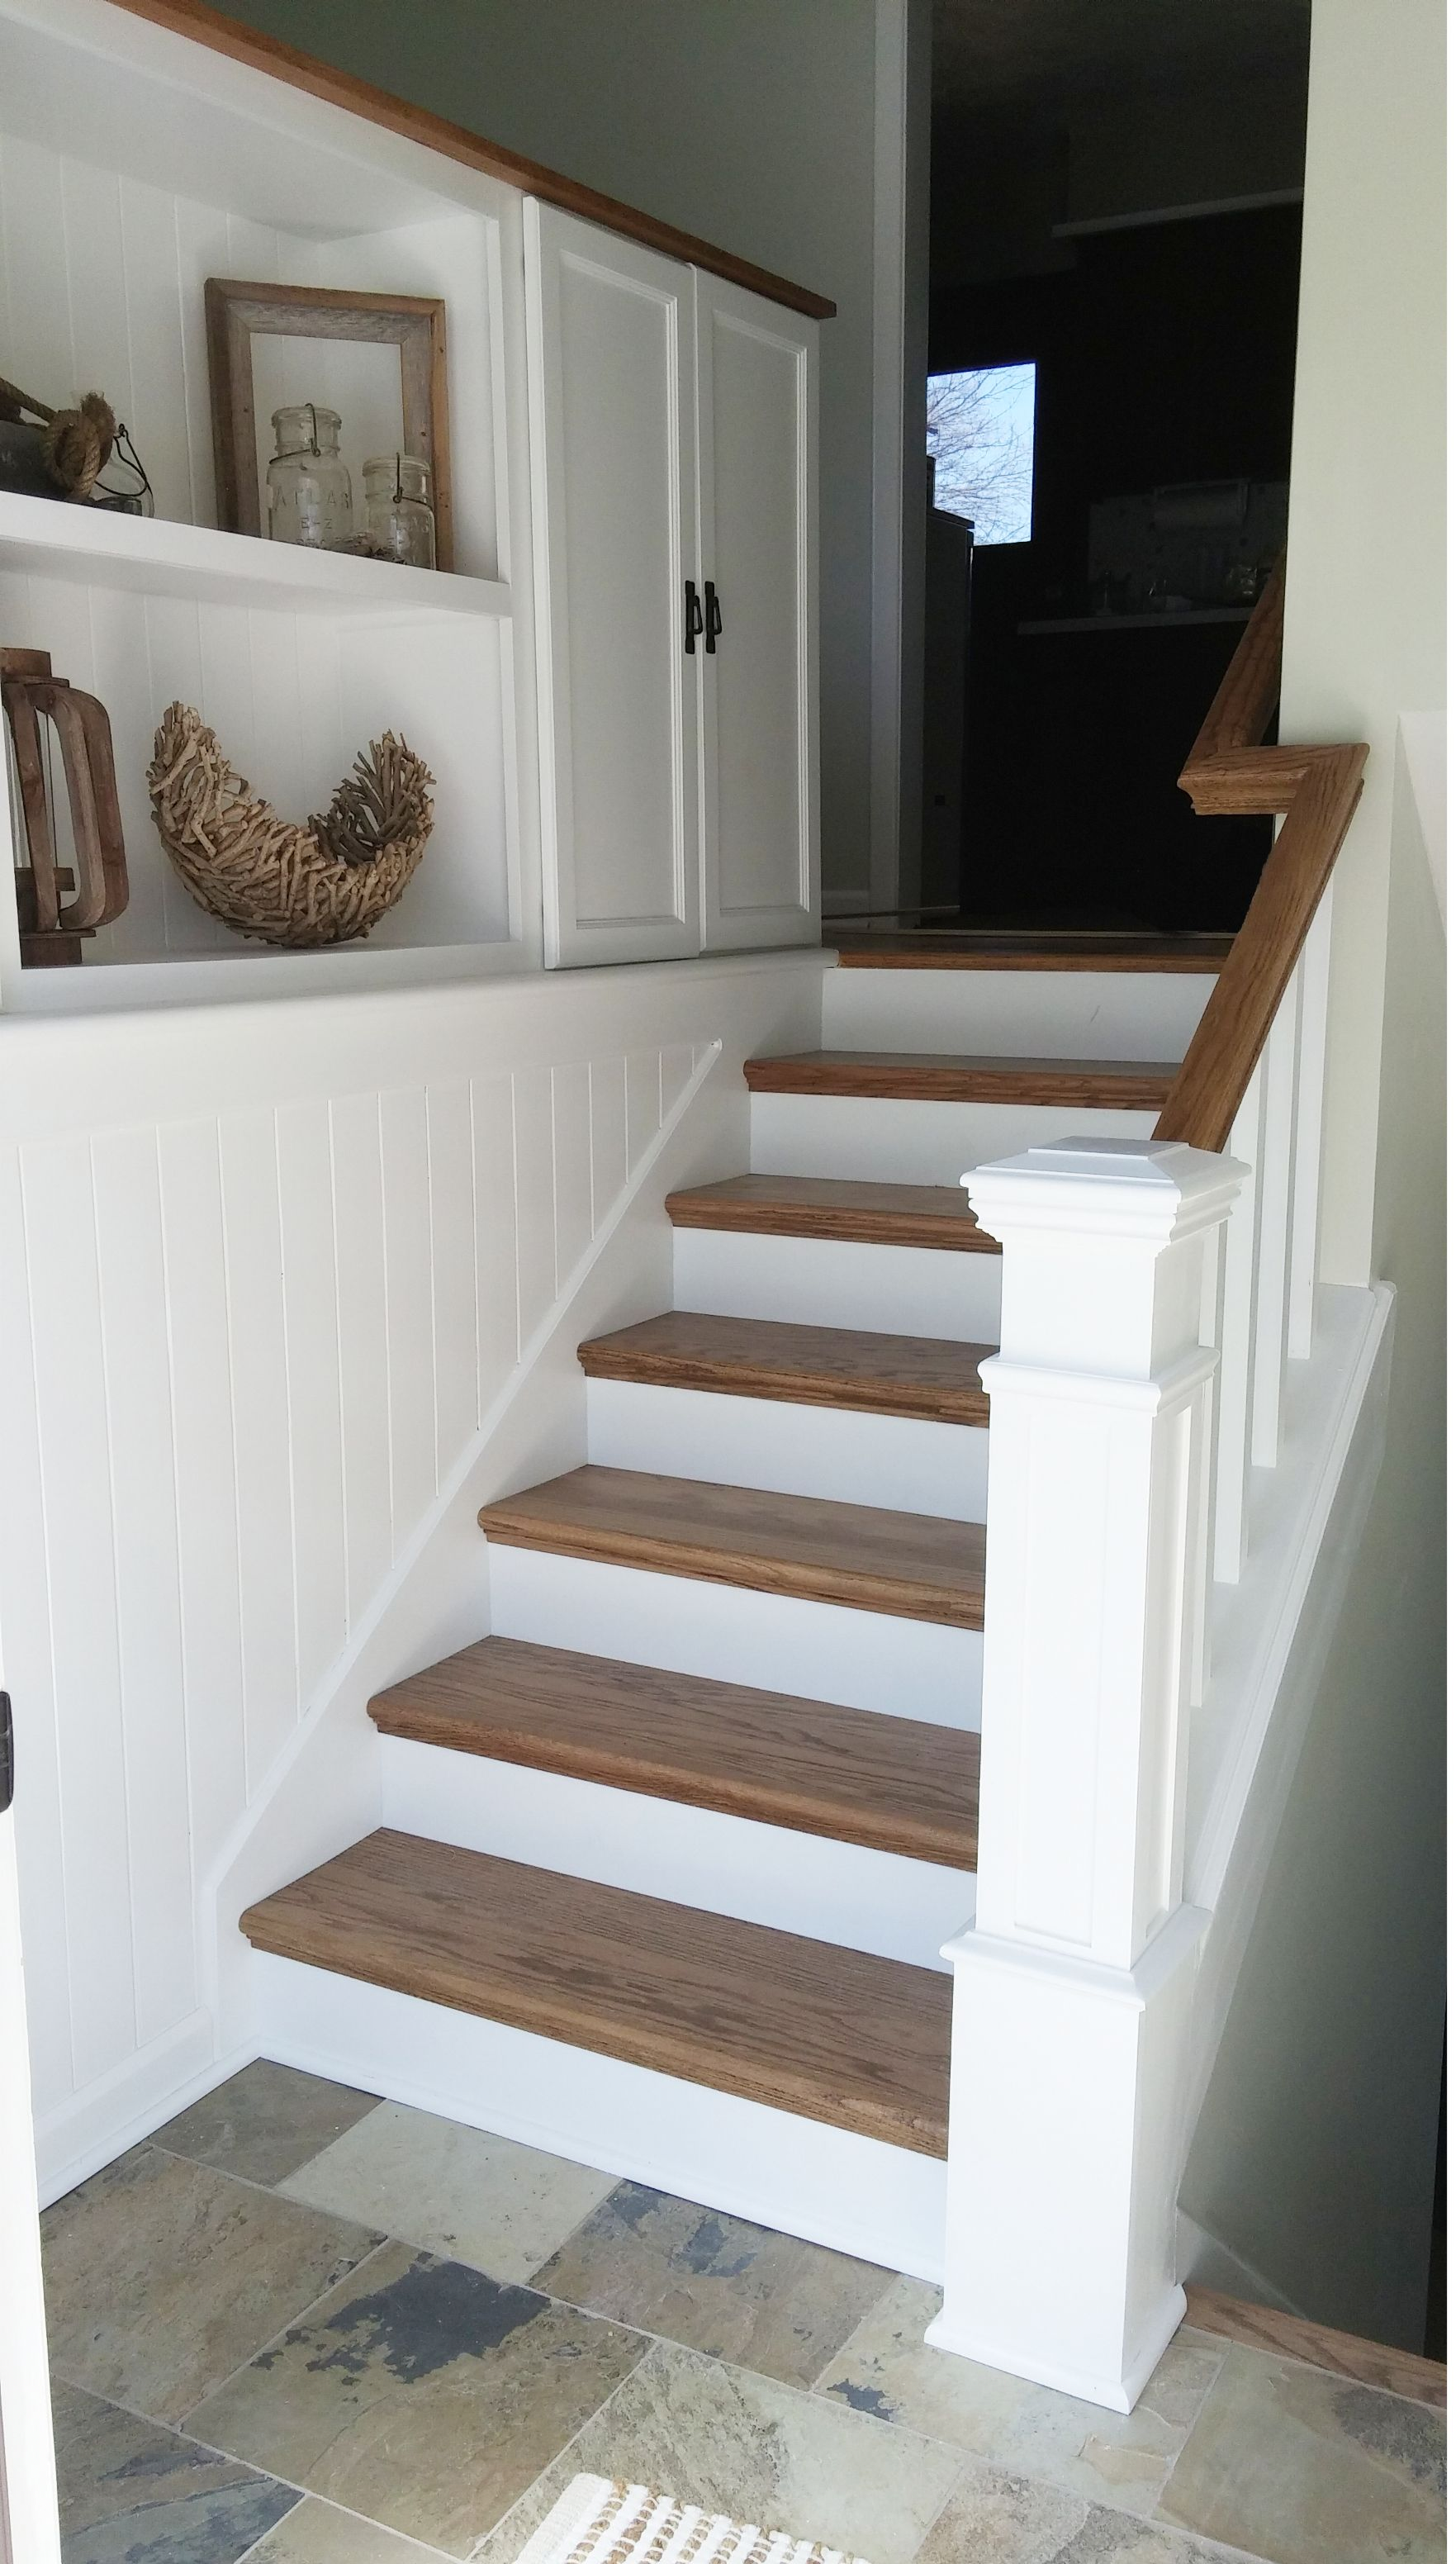 Home Without A Foyer : Diy split entry remodel added storage planking to tie